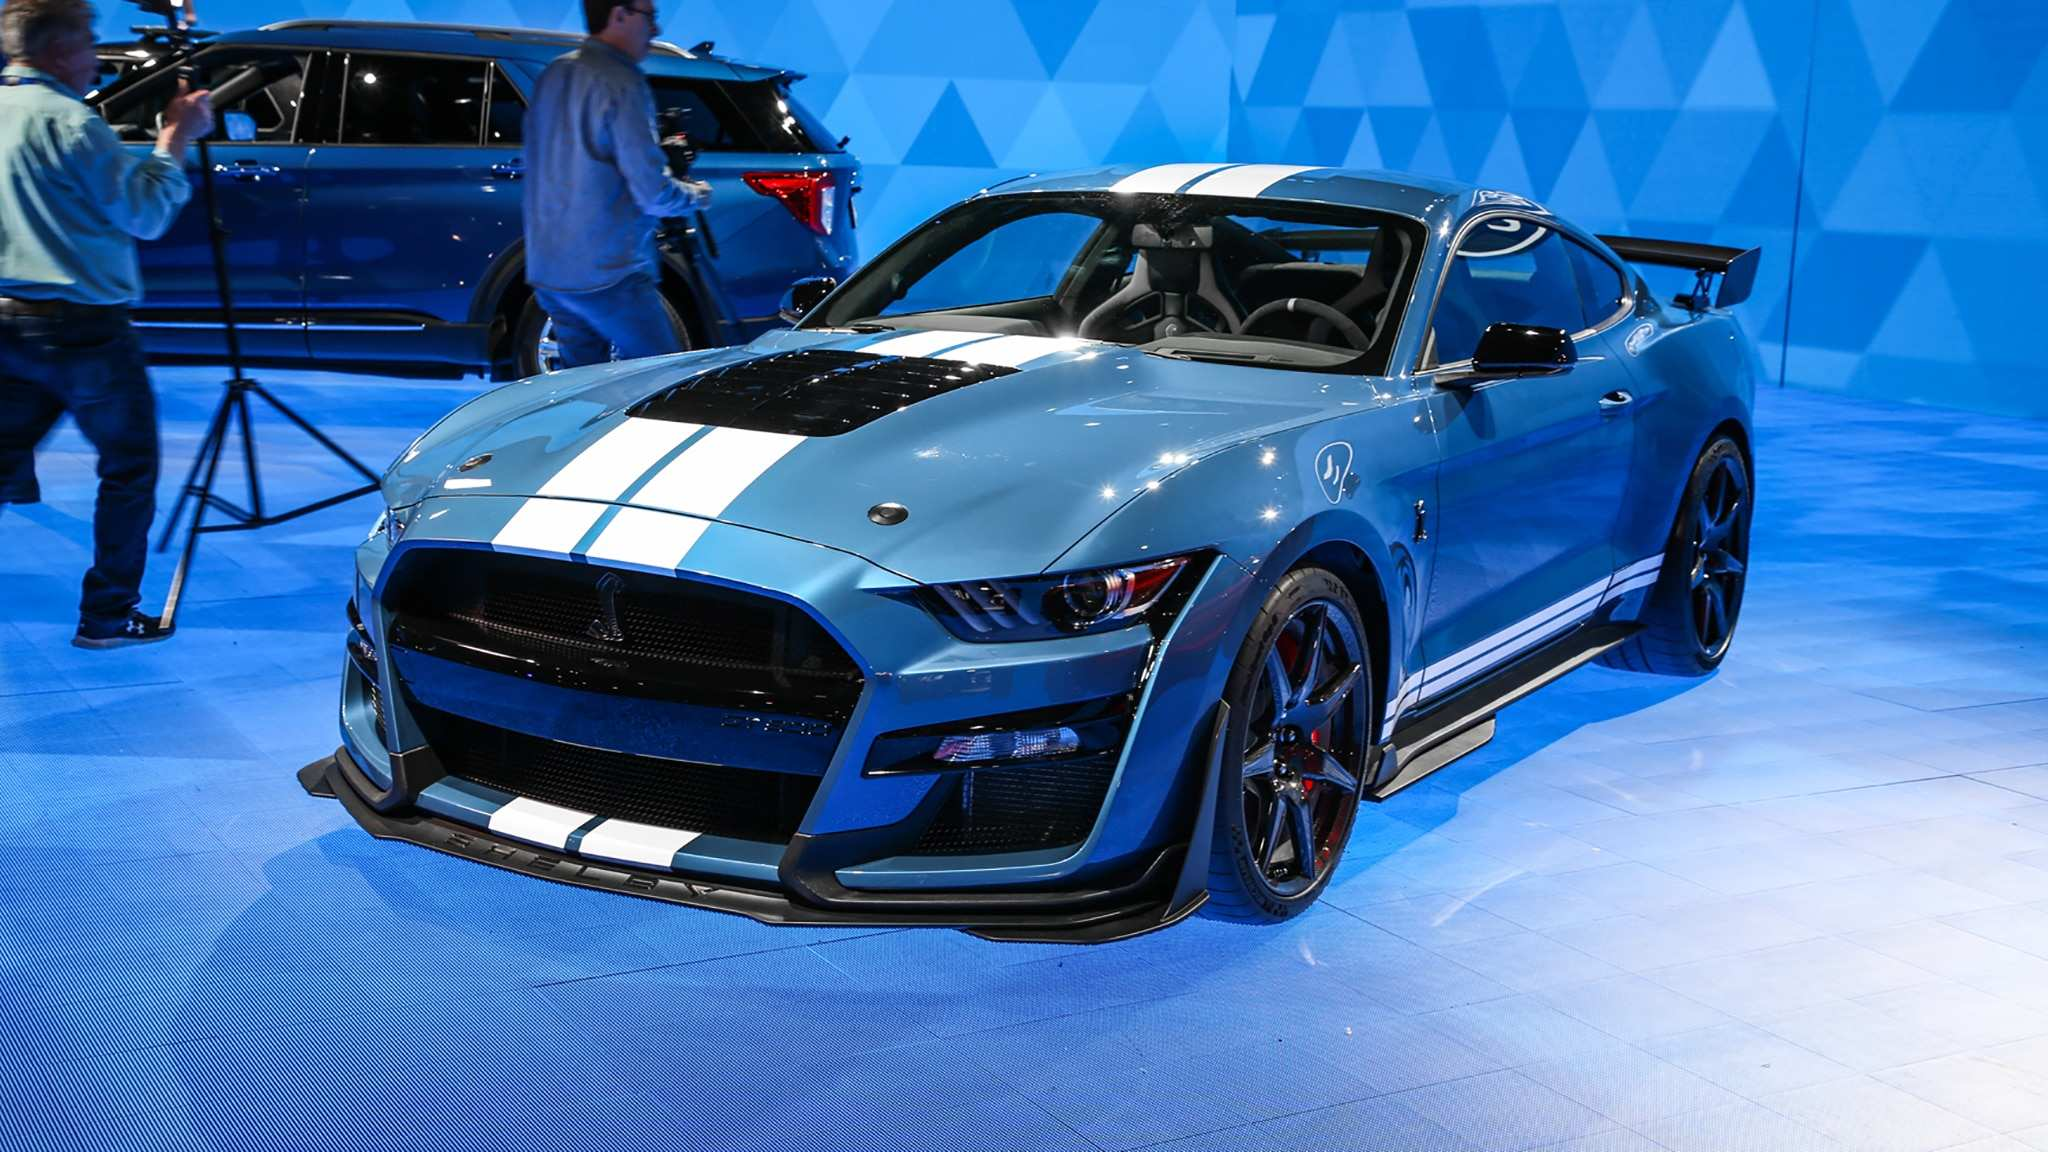 90 Gallery of 2020 Ford Shelby Gt500 Price Reviews by 2020 Ford Shelby Gt500 Price